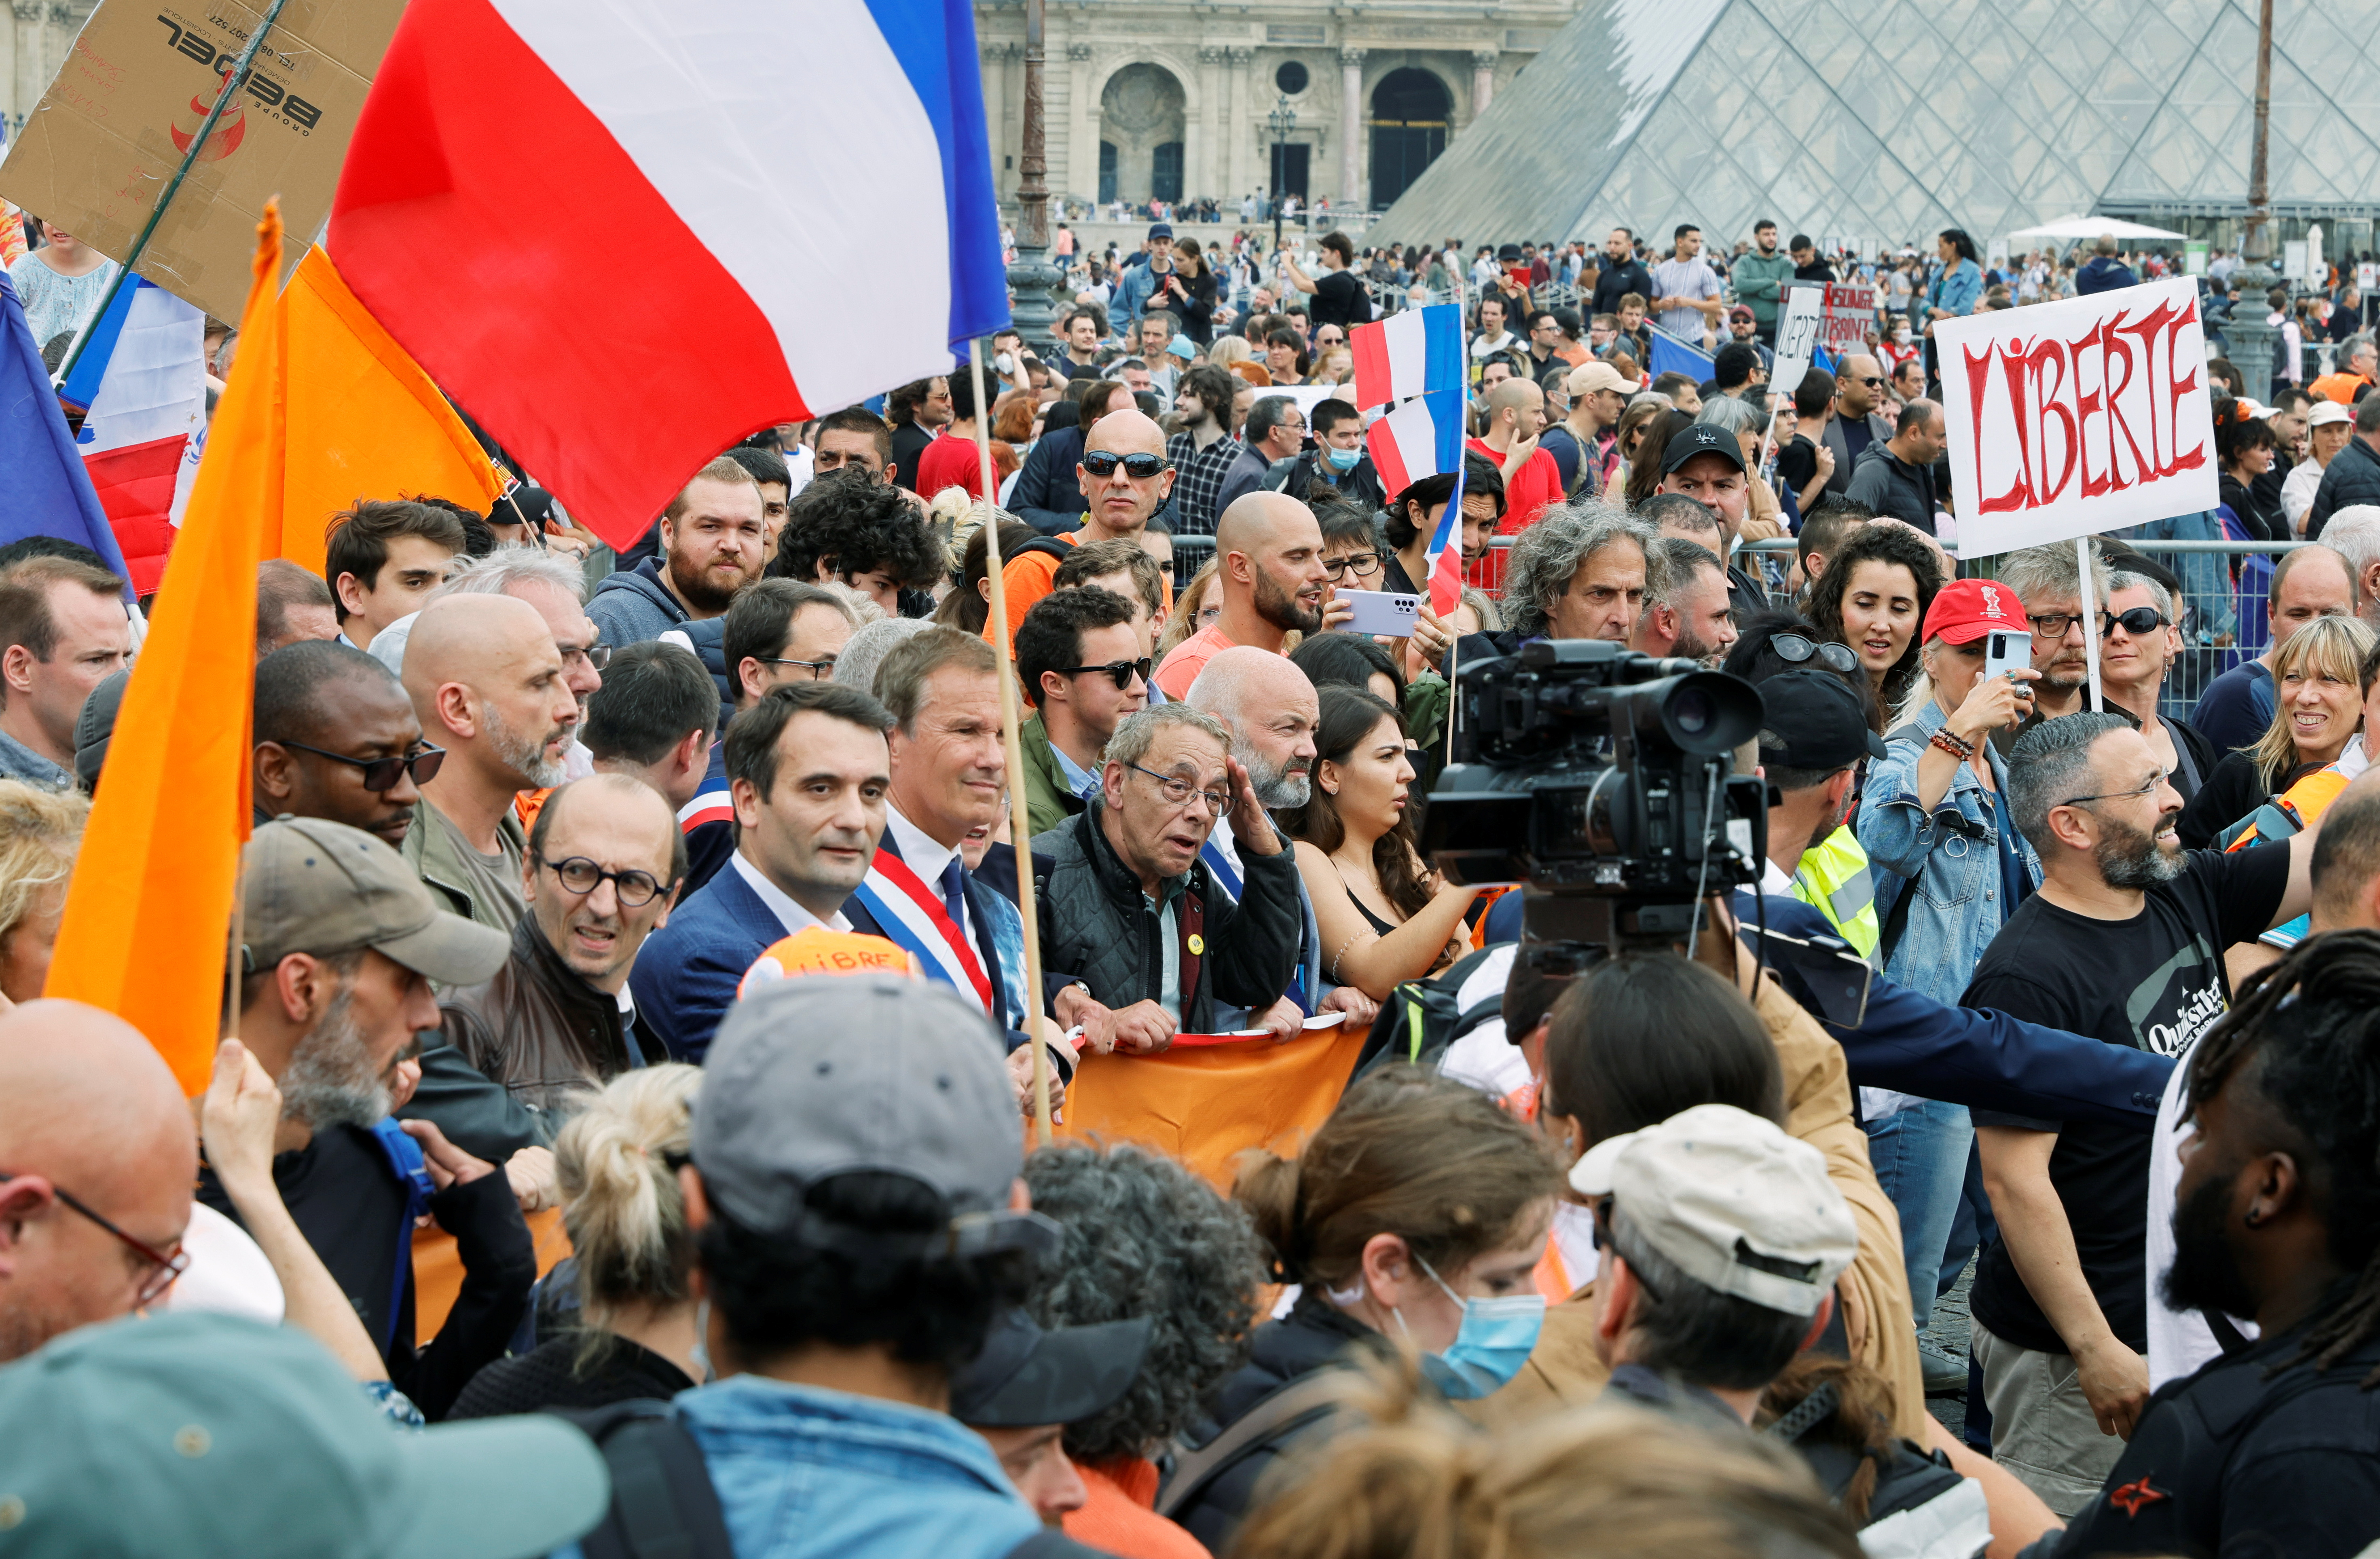 Florian Philippot, President of French political party Les Patriotes, and Nicolas Dupont-Aignan, head of French political party Debout La France (DLF) attend a protest against the new measures announced by French President Emmanuel Macron to fight the coronavirus disease (COVID-19) outbreak, in Paris, France, July 17, 2021. REUTERS/Pascal Rossignol